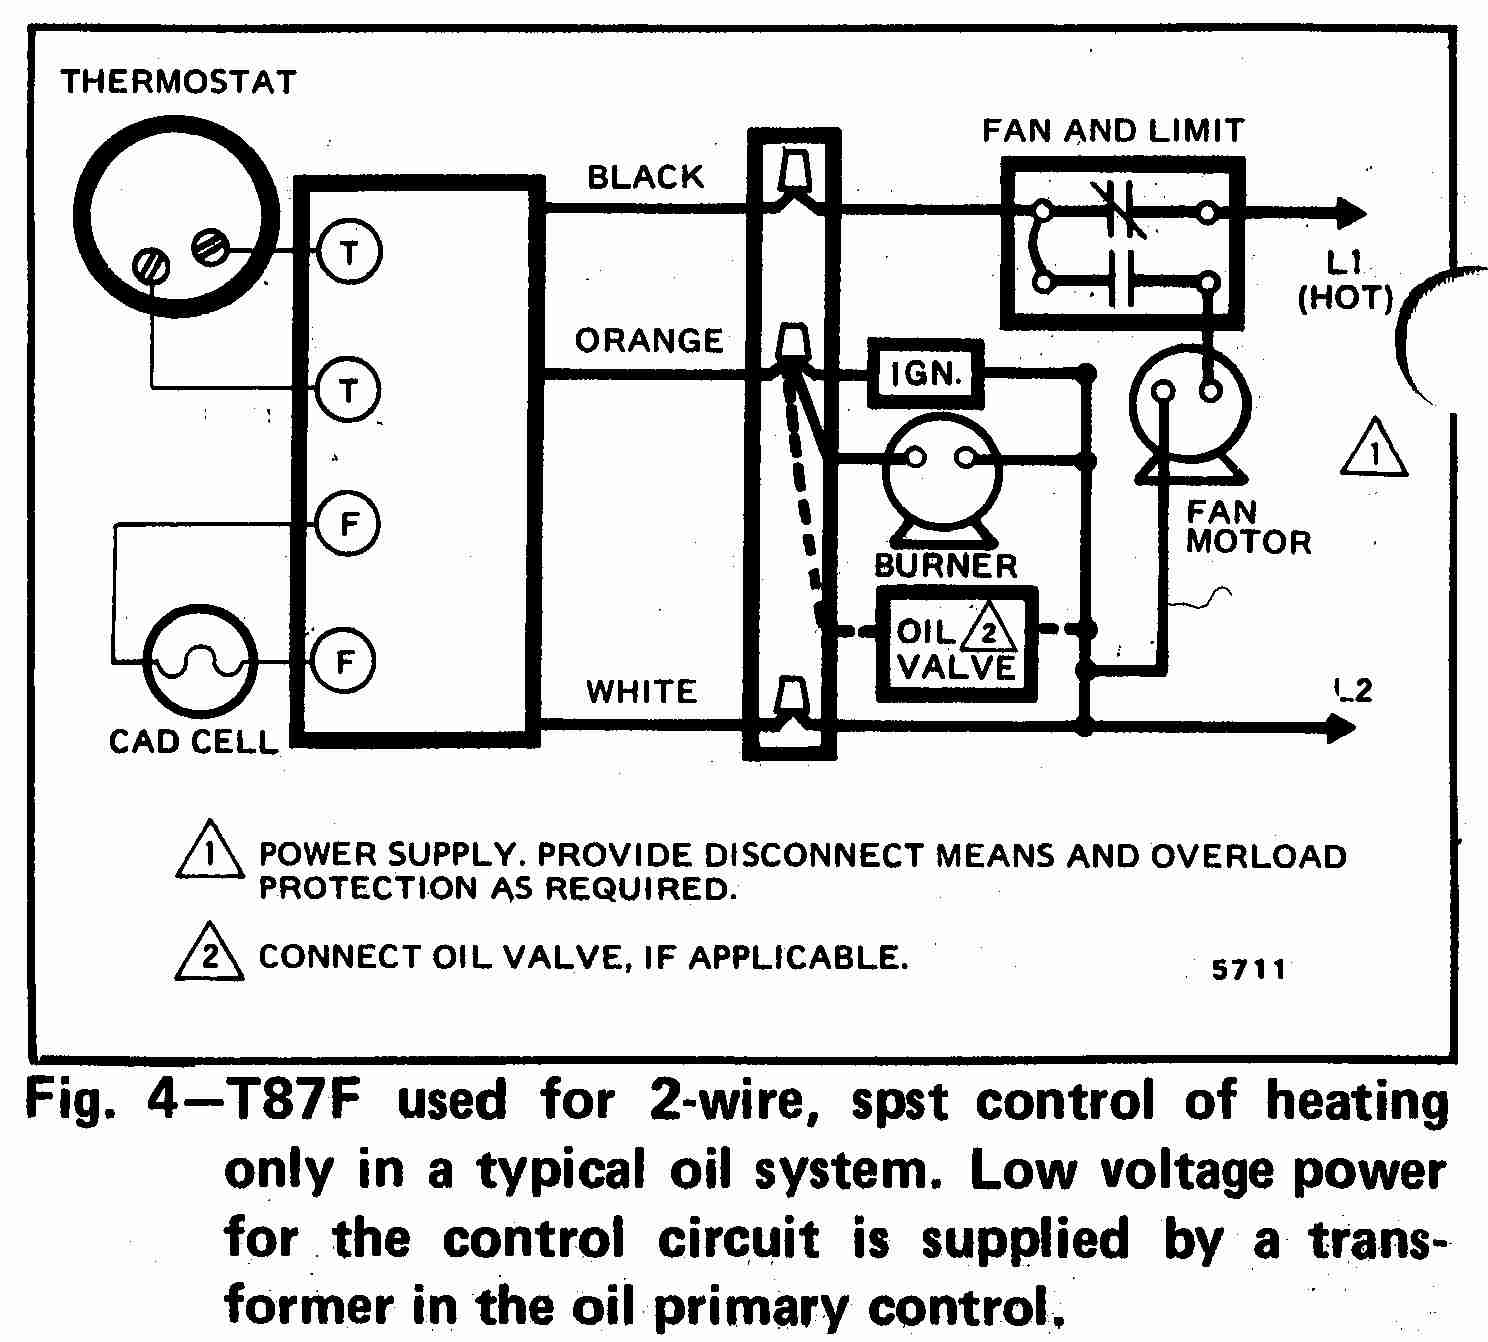 TT_T87F_0002_2W_DJF room thermostat wiring diagrams for hvac systems honeywell wiring diagram at gsmportal.co